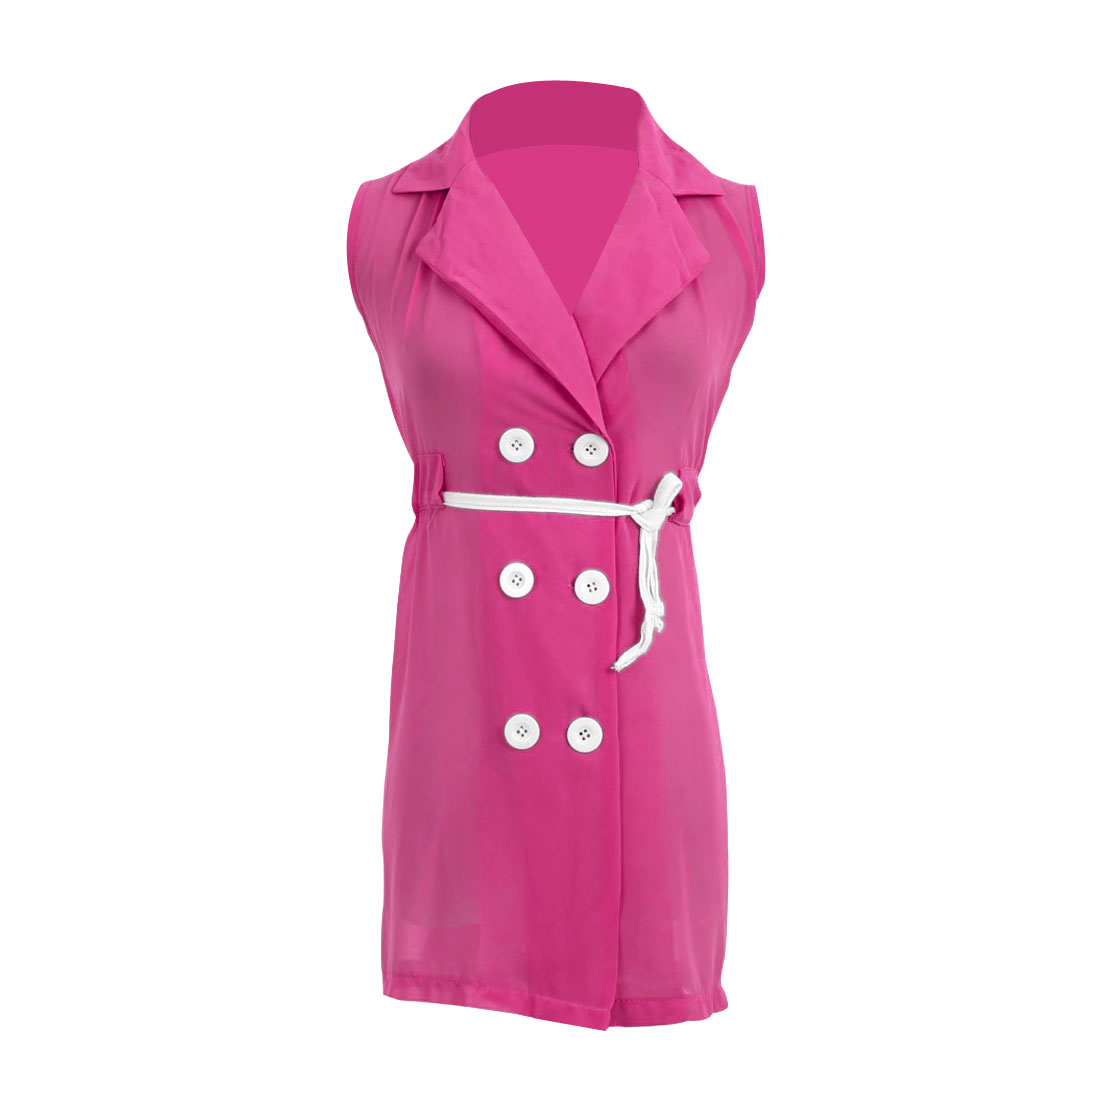 Ladies Point Collar Chiffon Buttoned Front Trench Vests Fuchsia S